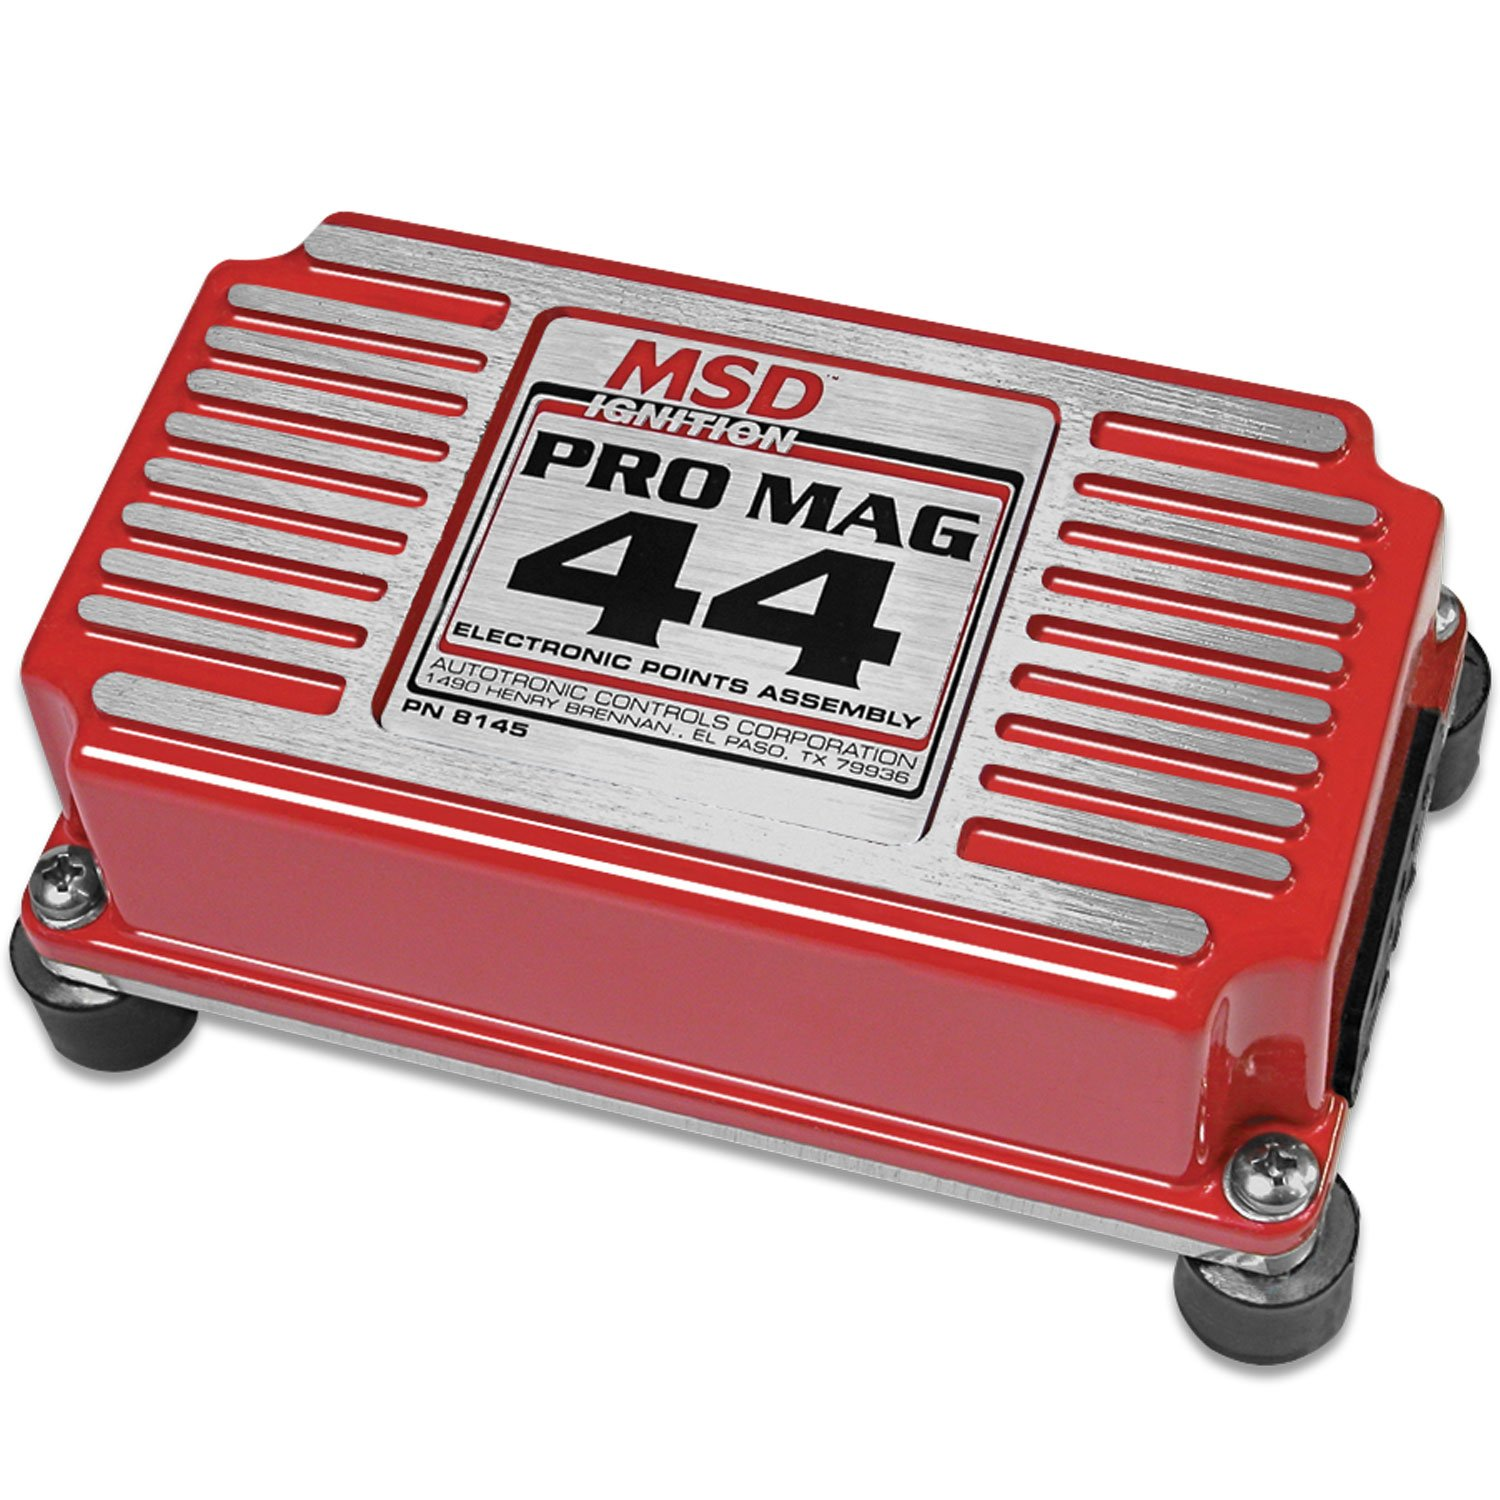 Pro Mag 8145msd Pro Mag 44 Amp Electronic Points Box  Red